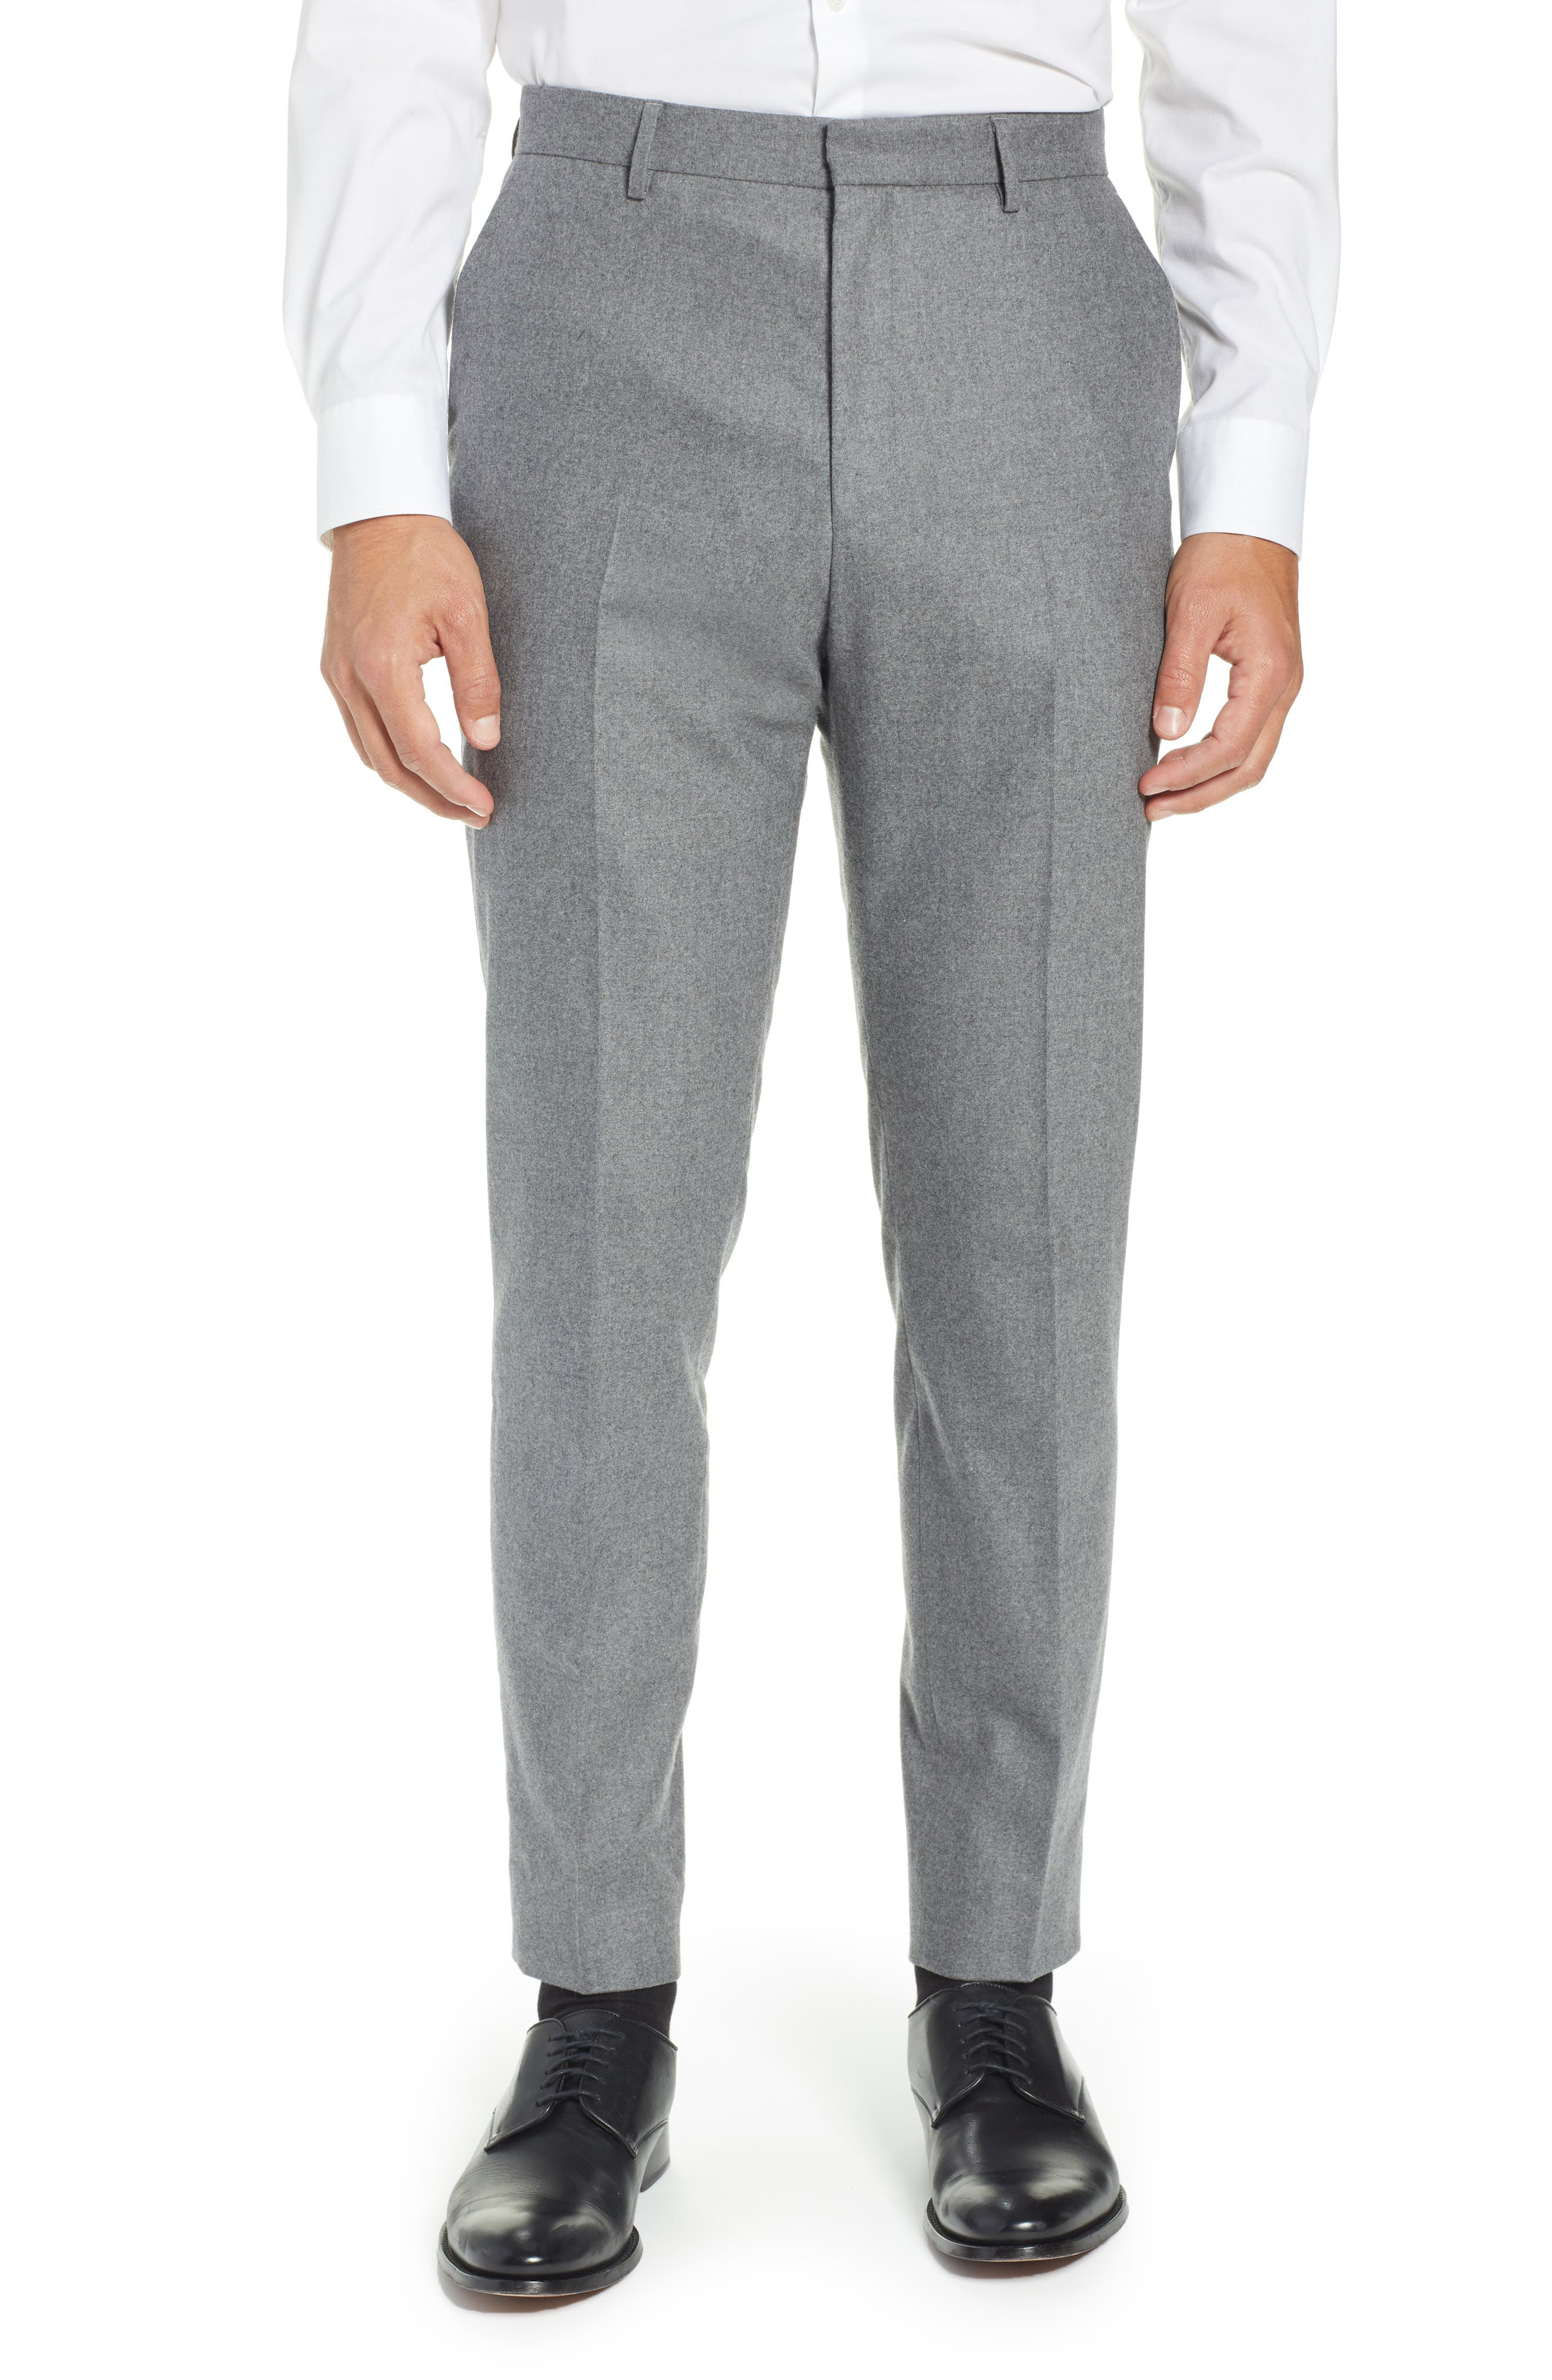 Pirko Flat Front Solid Stretch Wool Trousers,                         Main,                         color, MEDIUM GREY